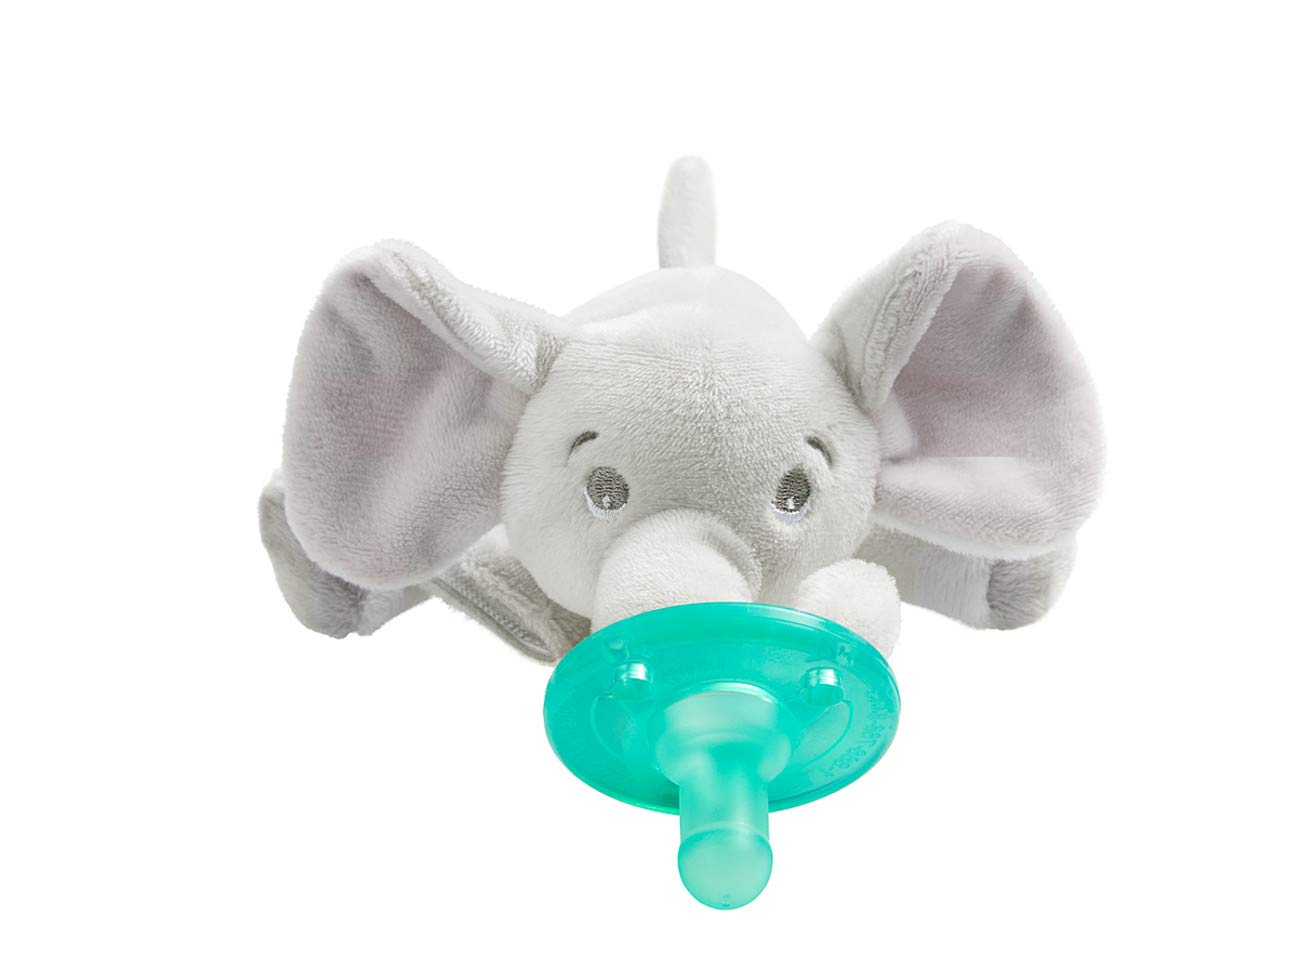 Philips Avent Soothie Snuggle Pacifier, 0-3 Month, Elephant, SCF347/03 by Philips AVENT